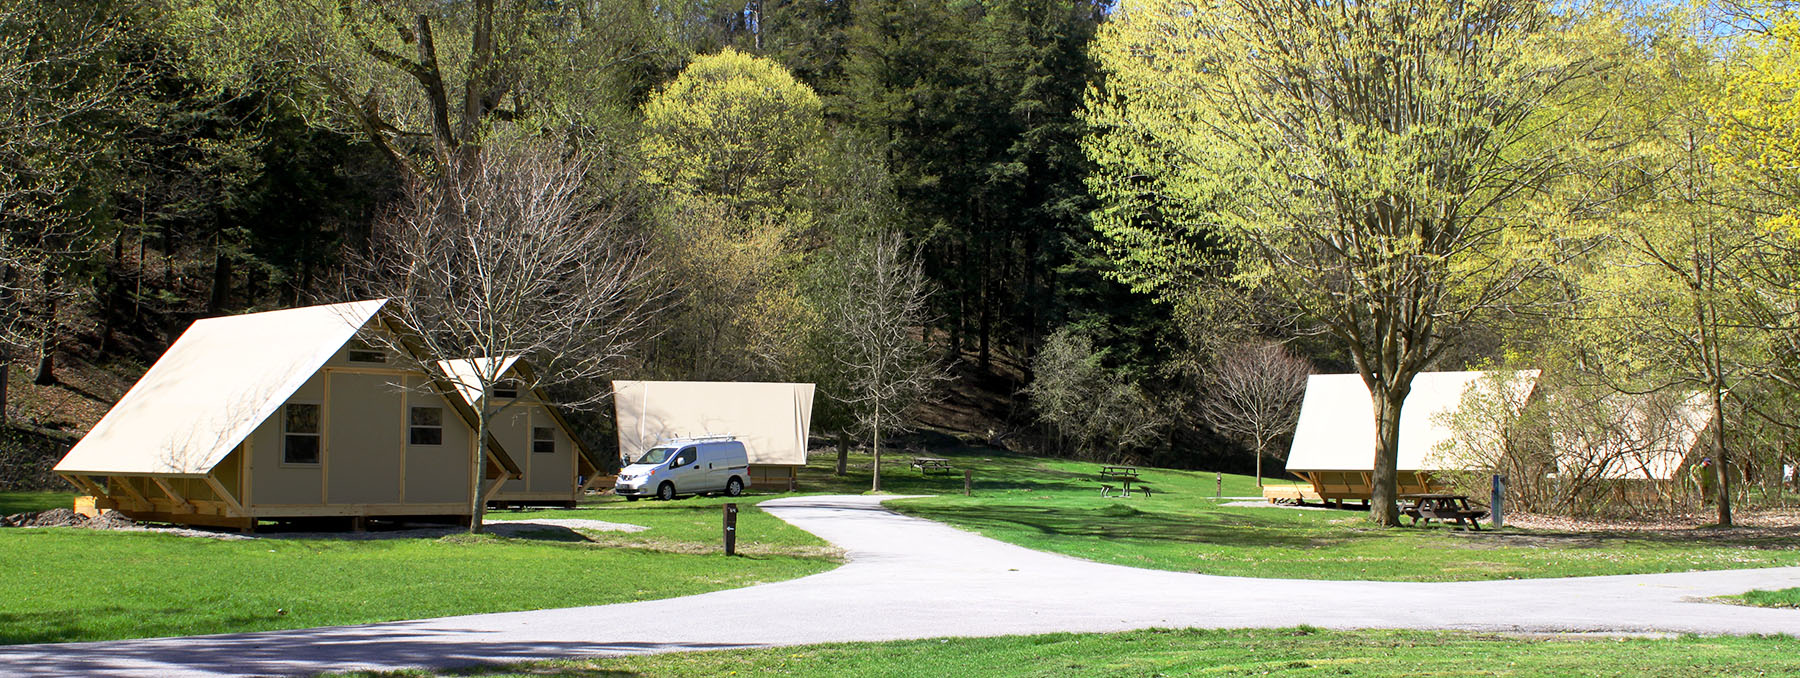 Parks canada otentiks at glen rouge campground